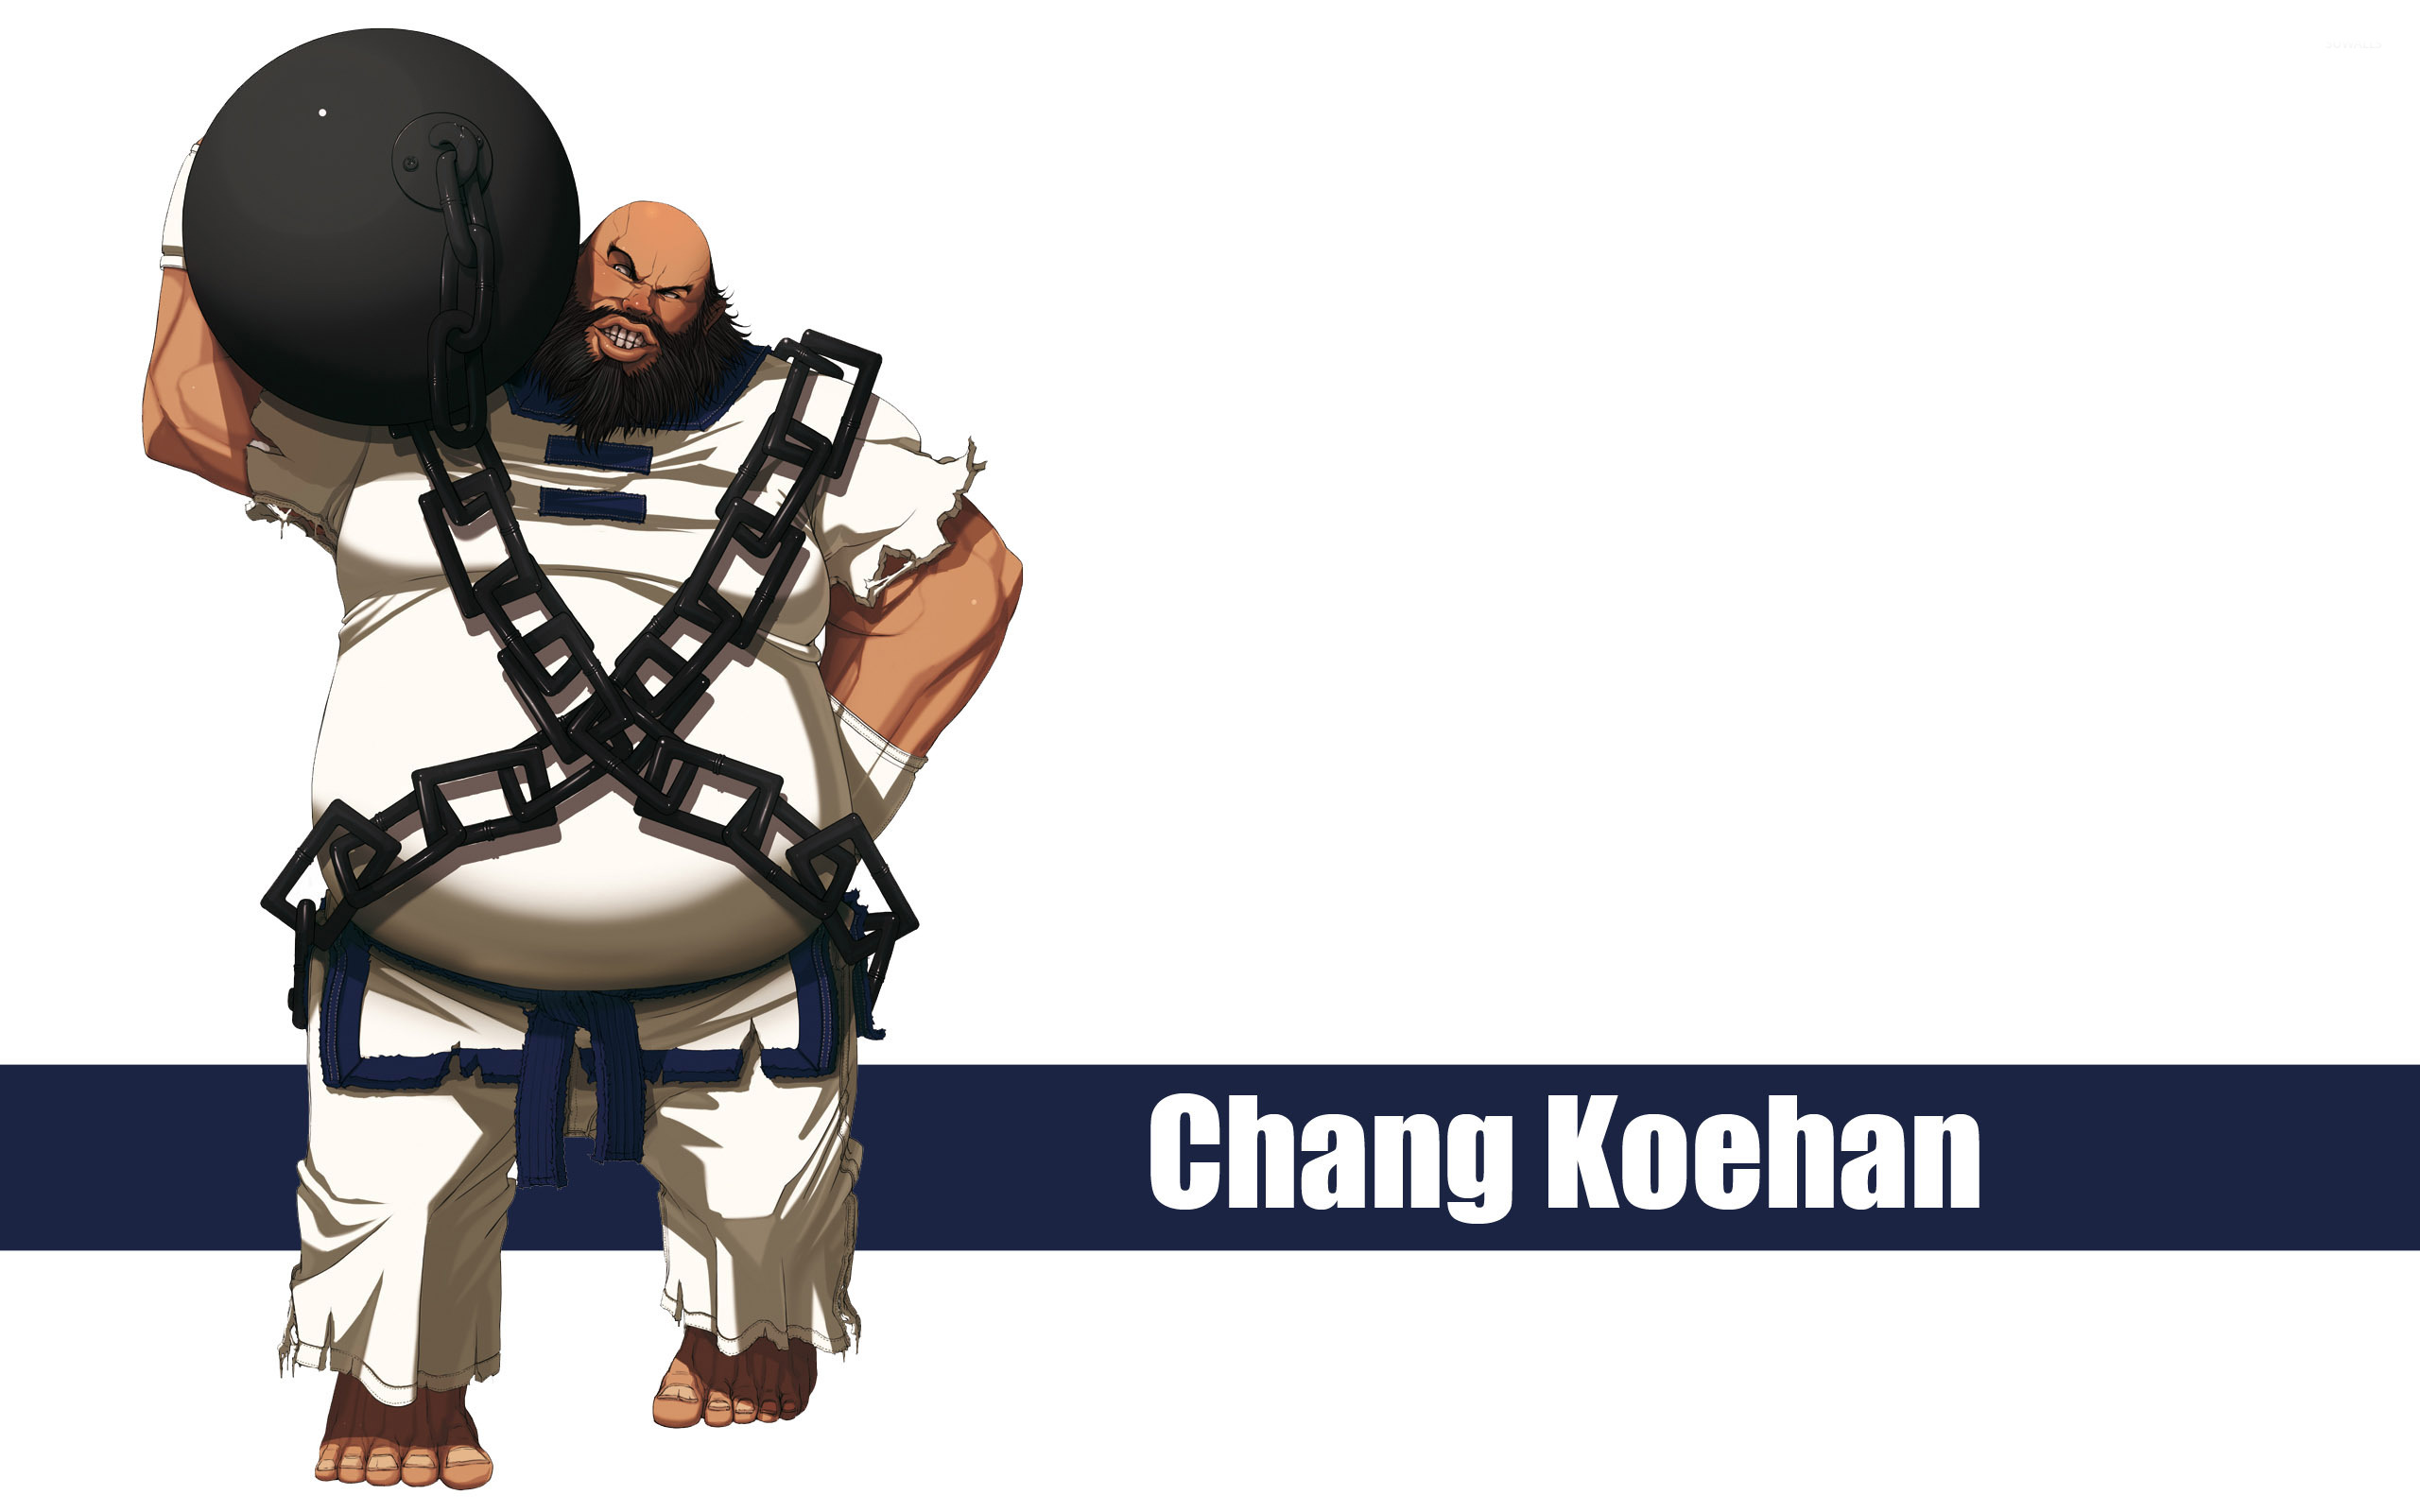 Chang Koehan The King Of Fighters Wallpaper Game Wallpapers